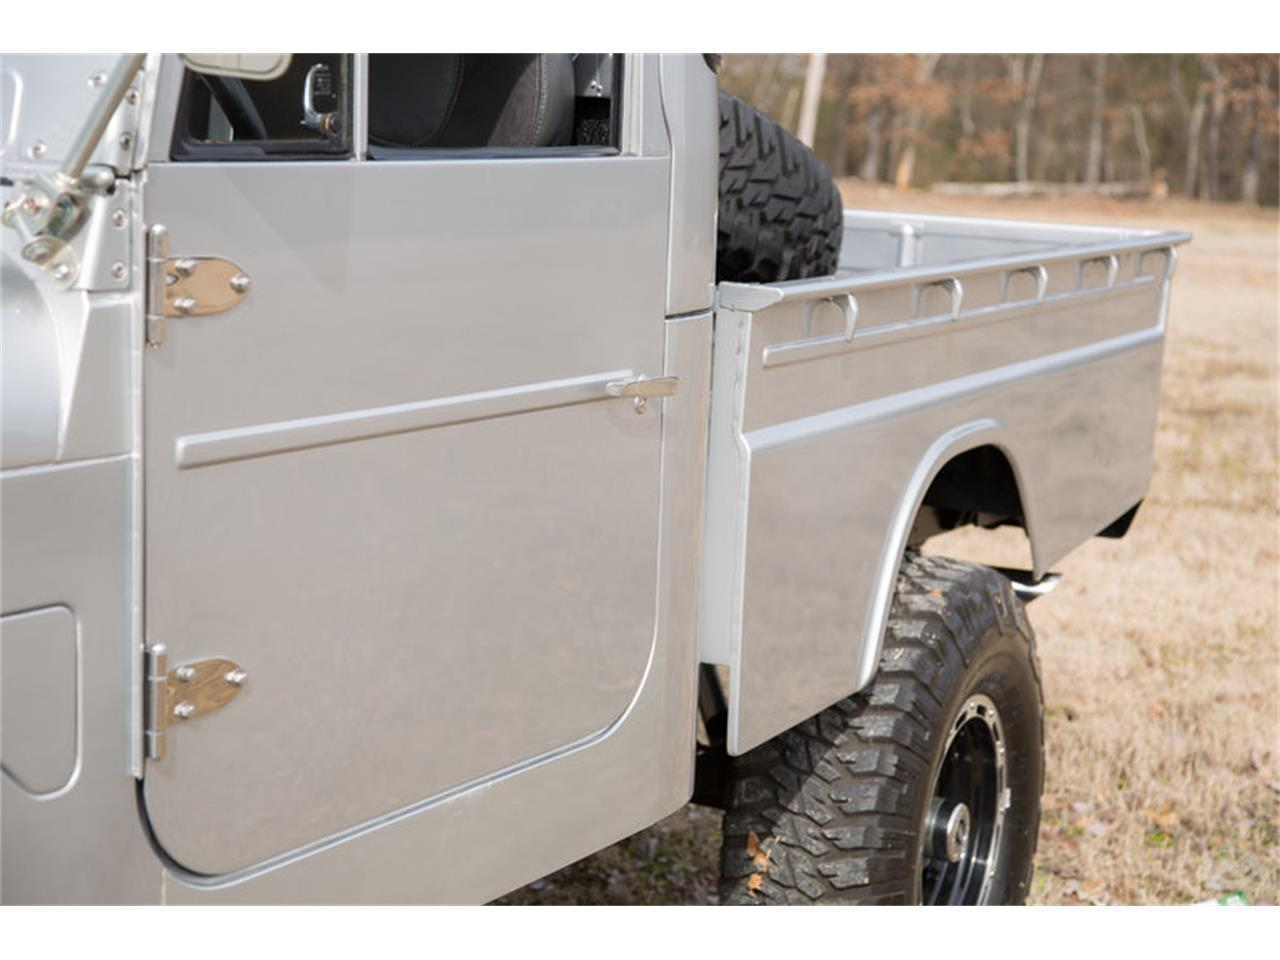 Large Picture of Classic '65 Toyota Land Cruiser FJ45 Pickup - $86,900.00 - M389